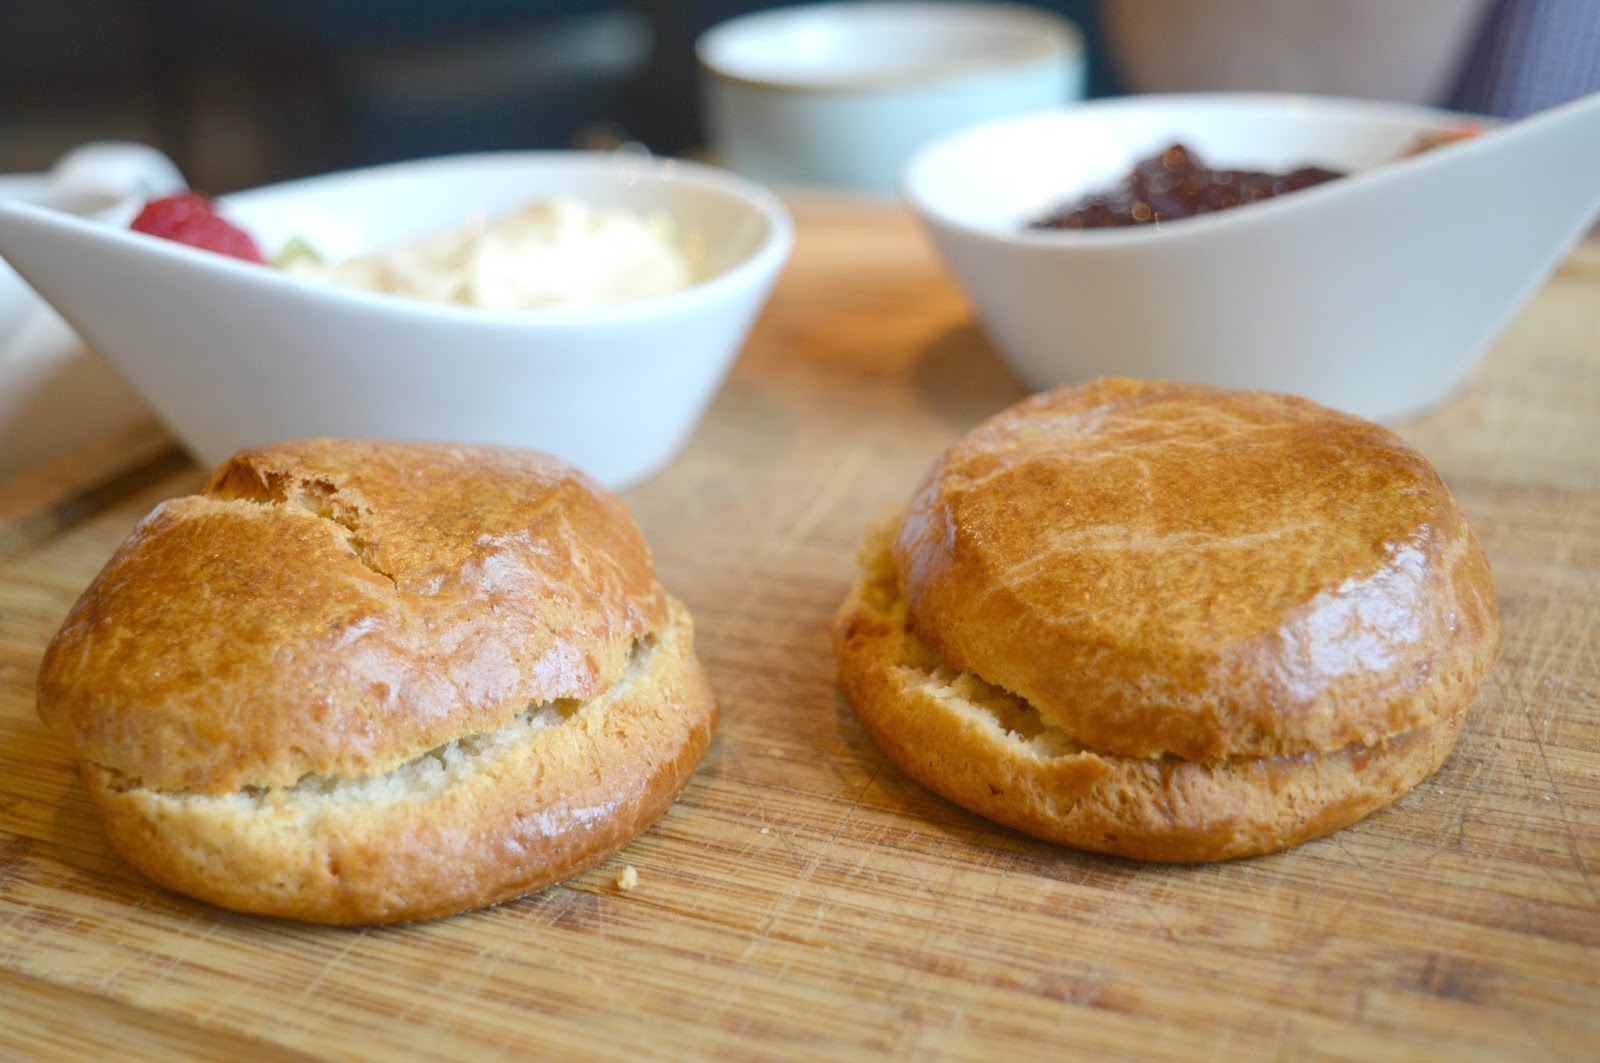 Afternoon Tea at The Painswick Hotel  - Scones